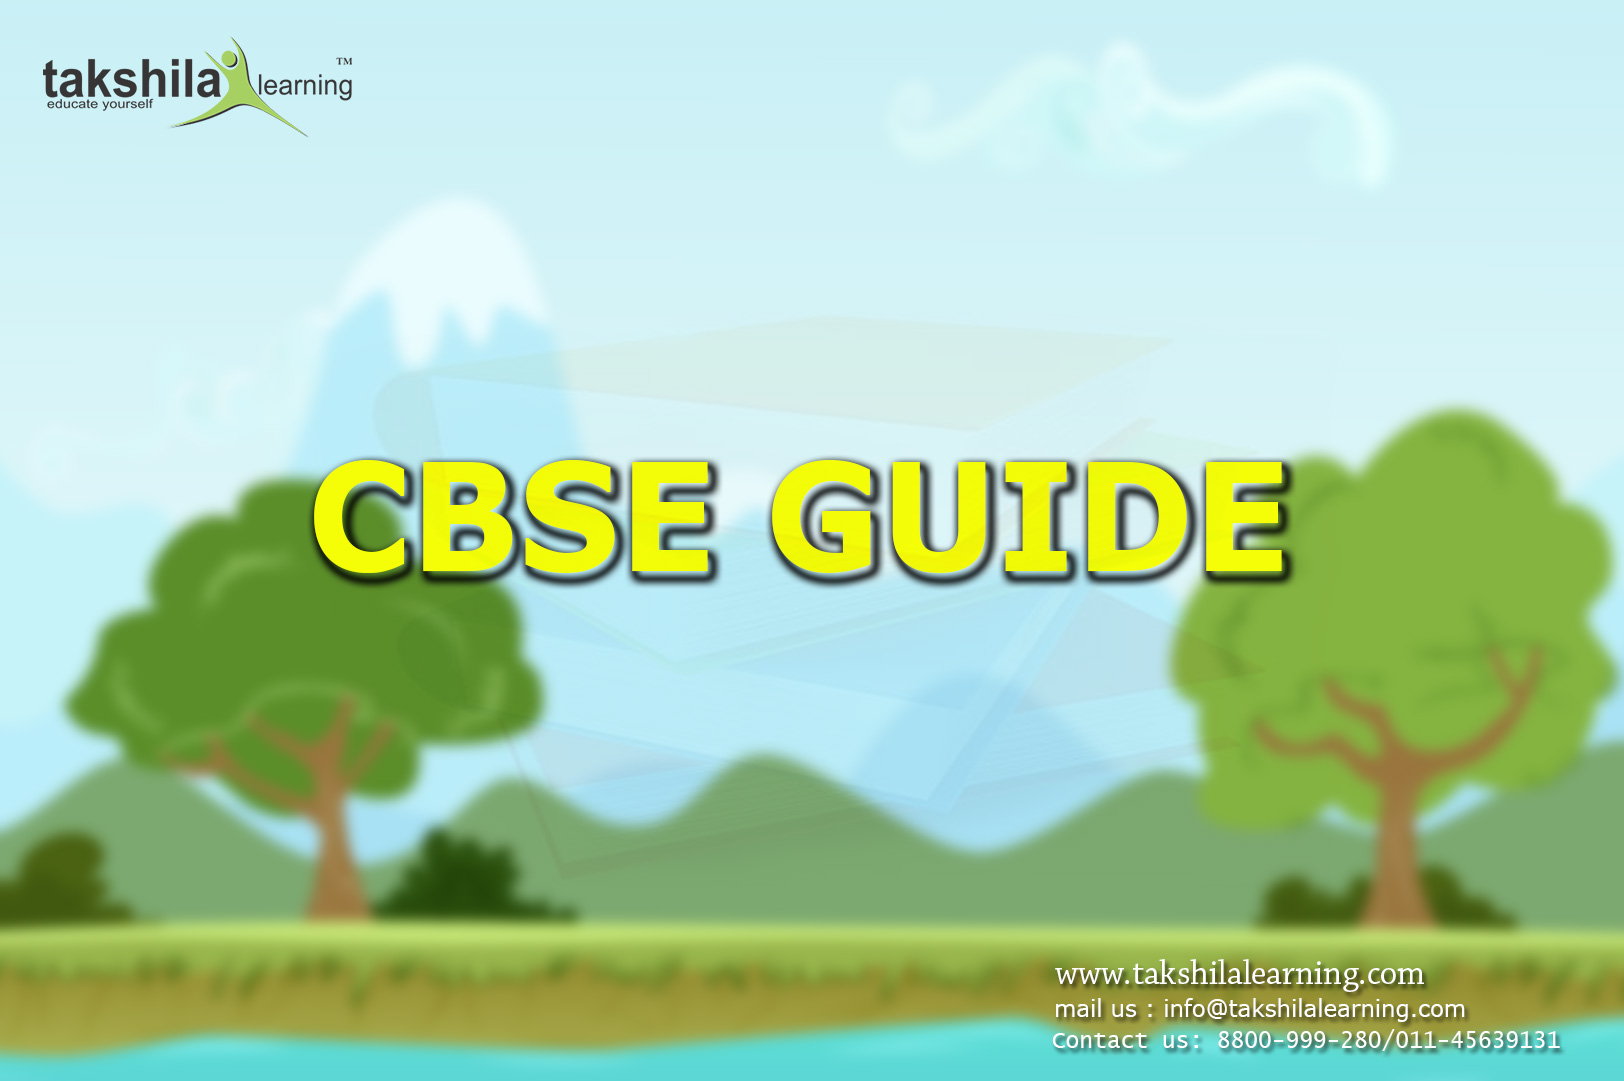 CBSE Guide - Complete CBSE Guide for Students and TeachersEducation and LearningCoaching Classes